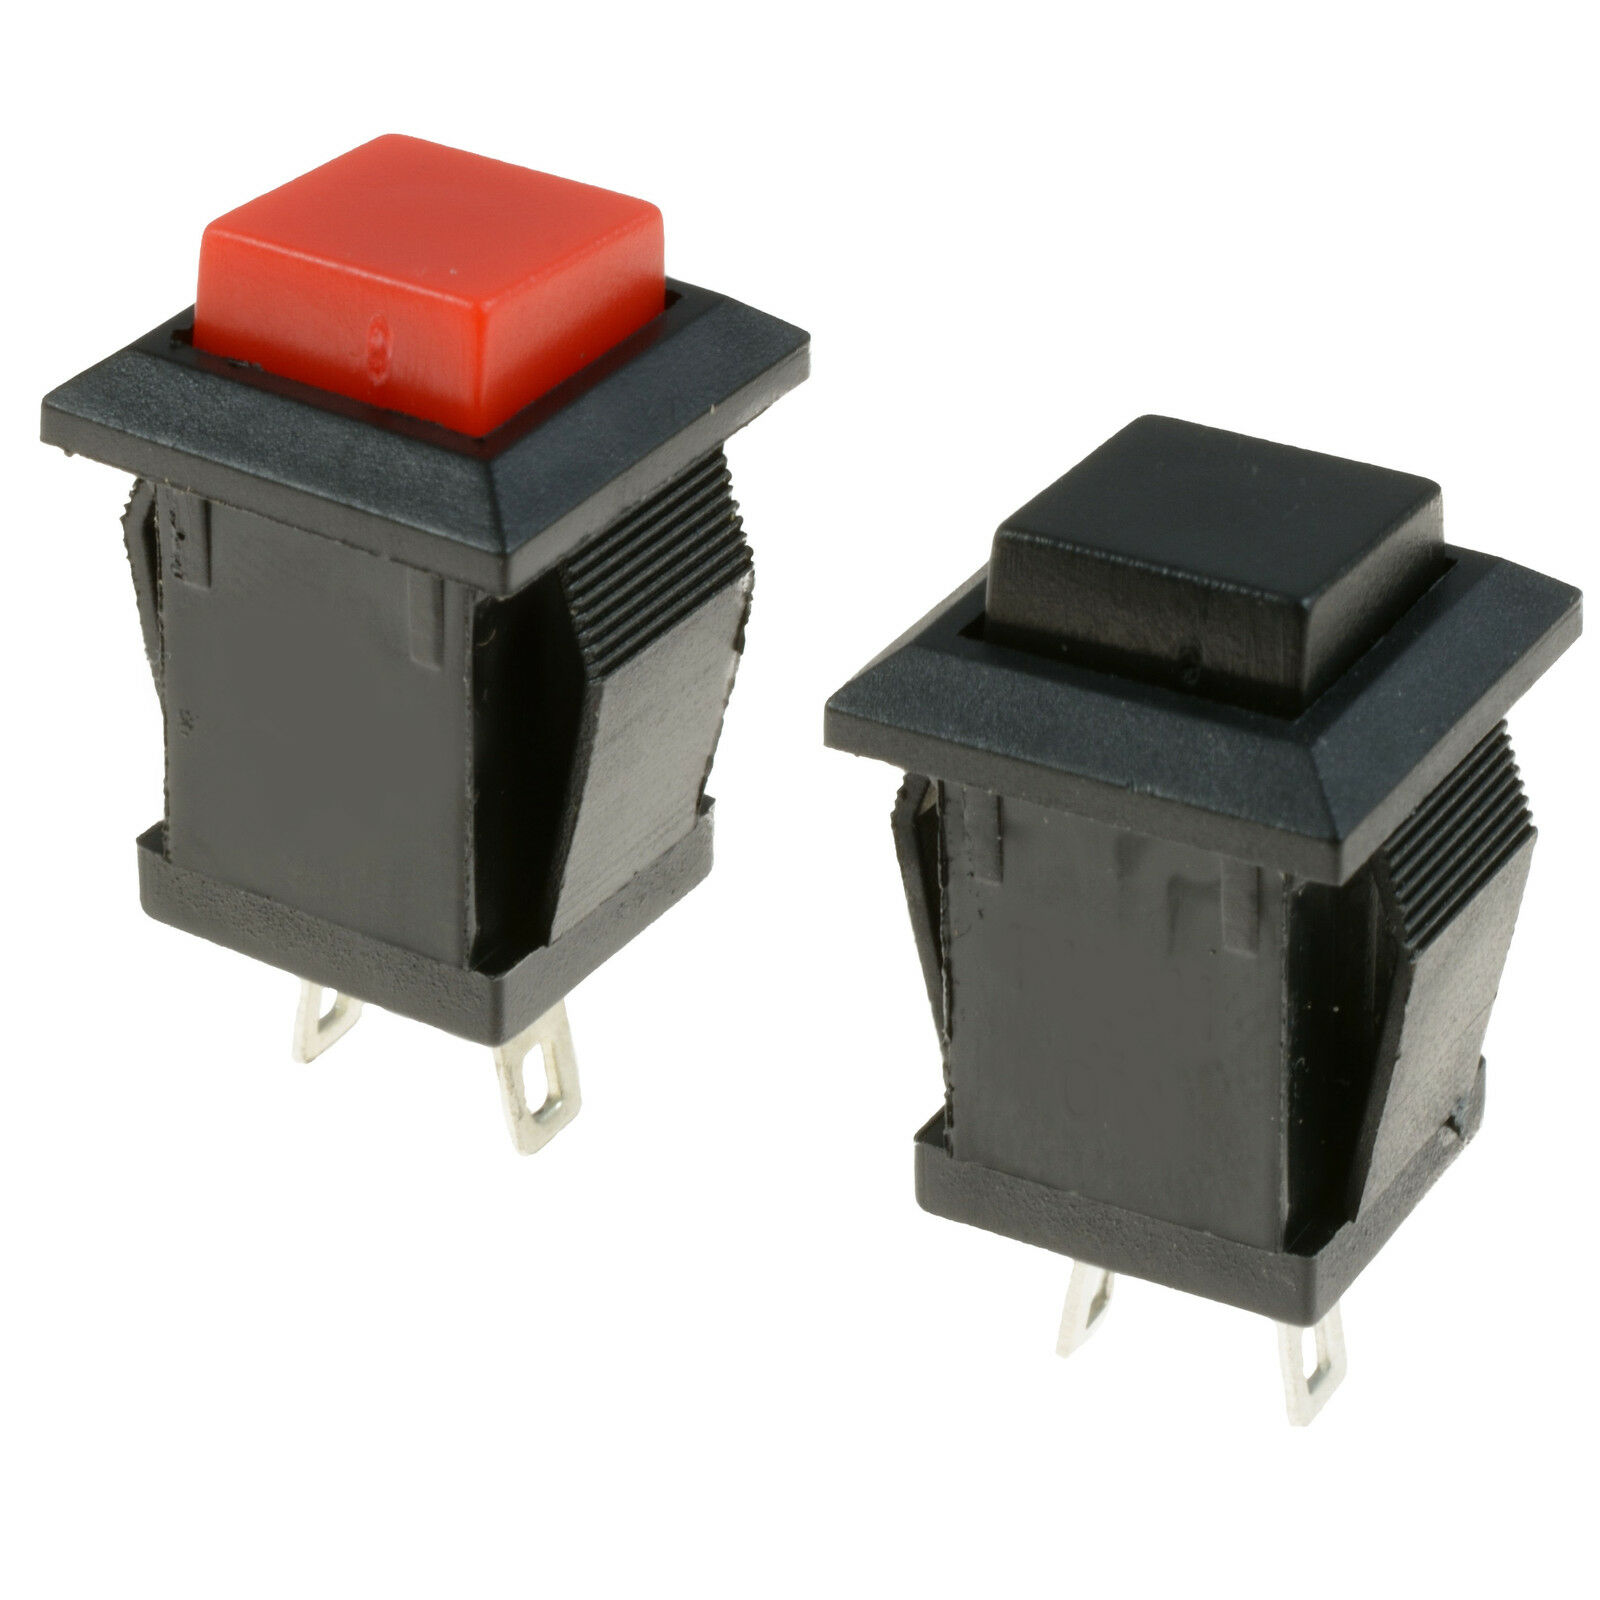 Square Momentary Offon Push To Make Switch Spst 260 Picclick Of Switches Should Only Require Two Terminals 1 See More